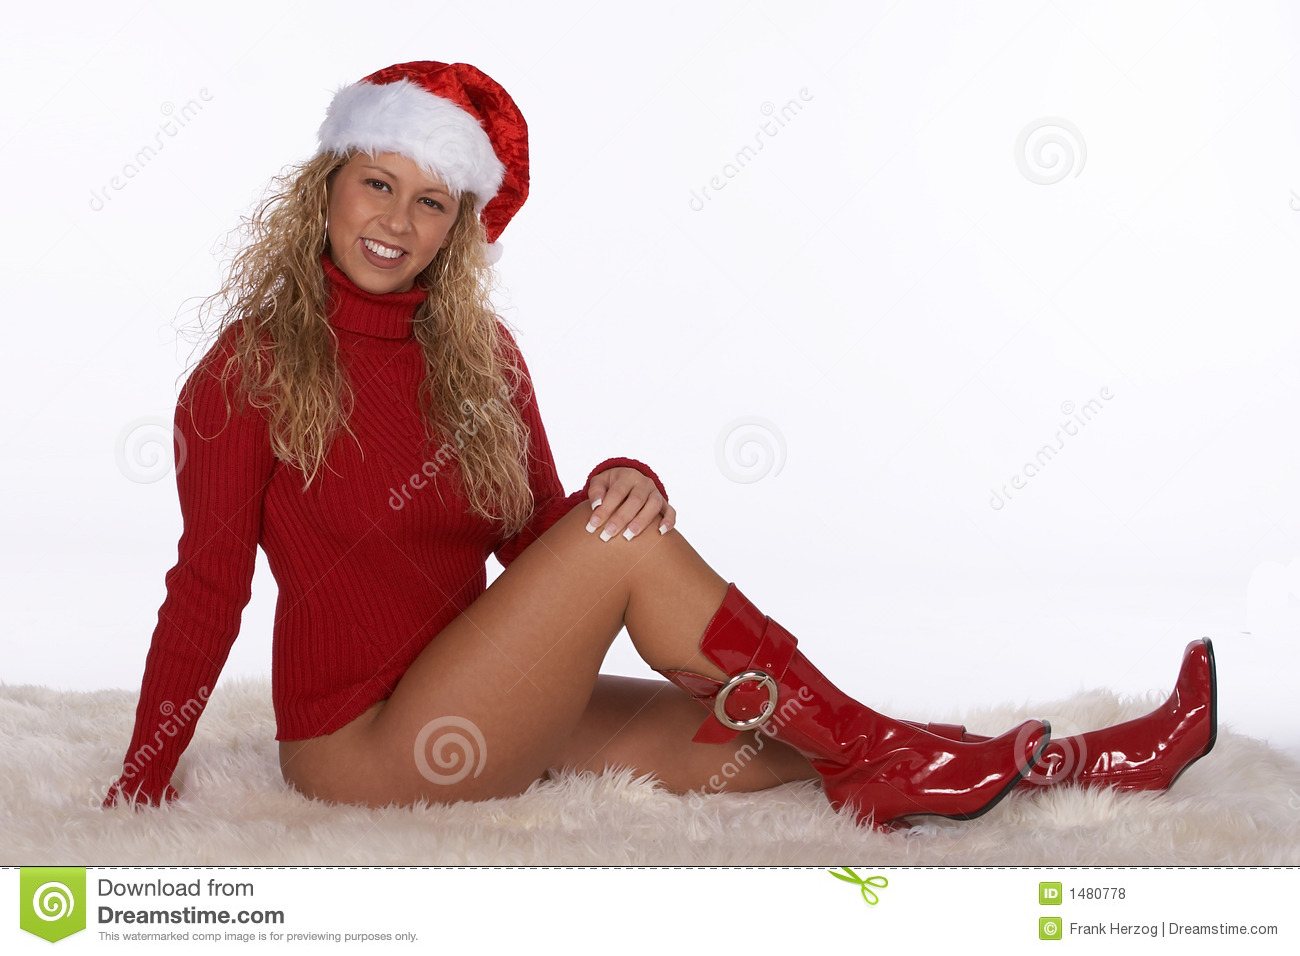 Female Santa In Red Sweater And Boots Lying On Fur Rug